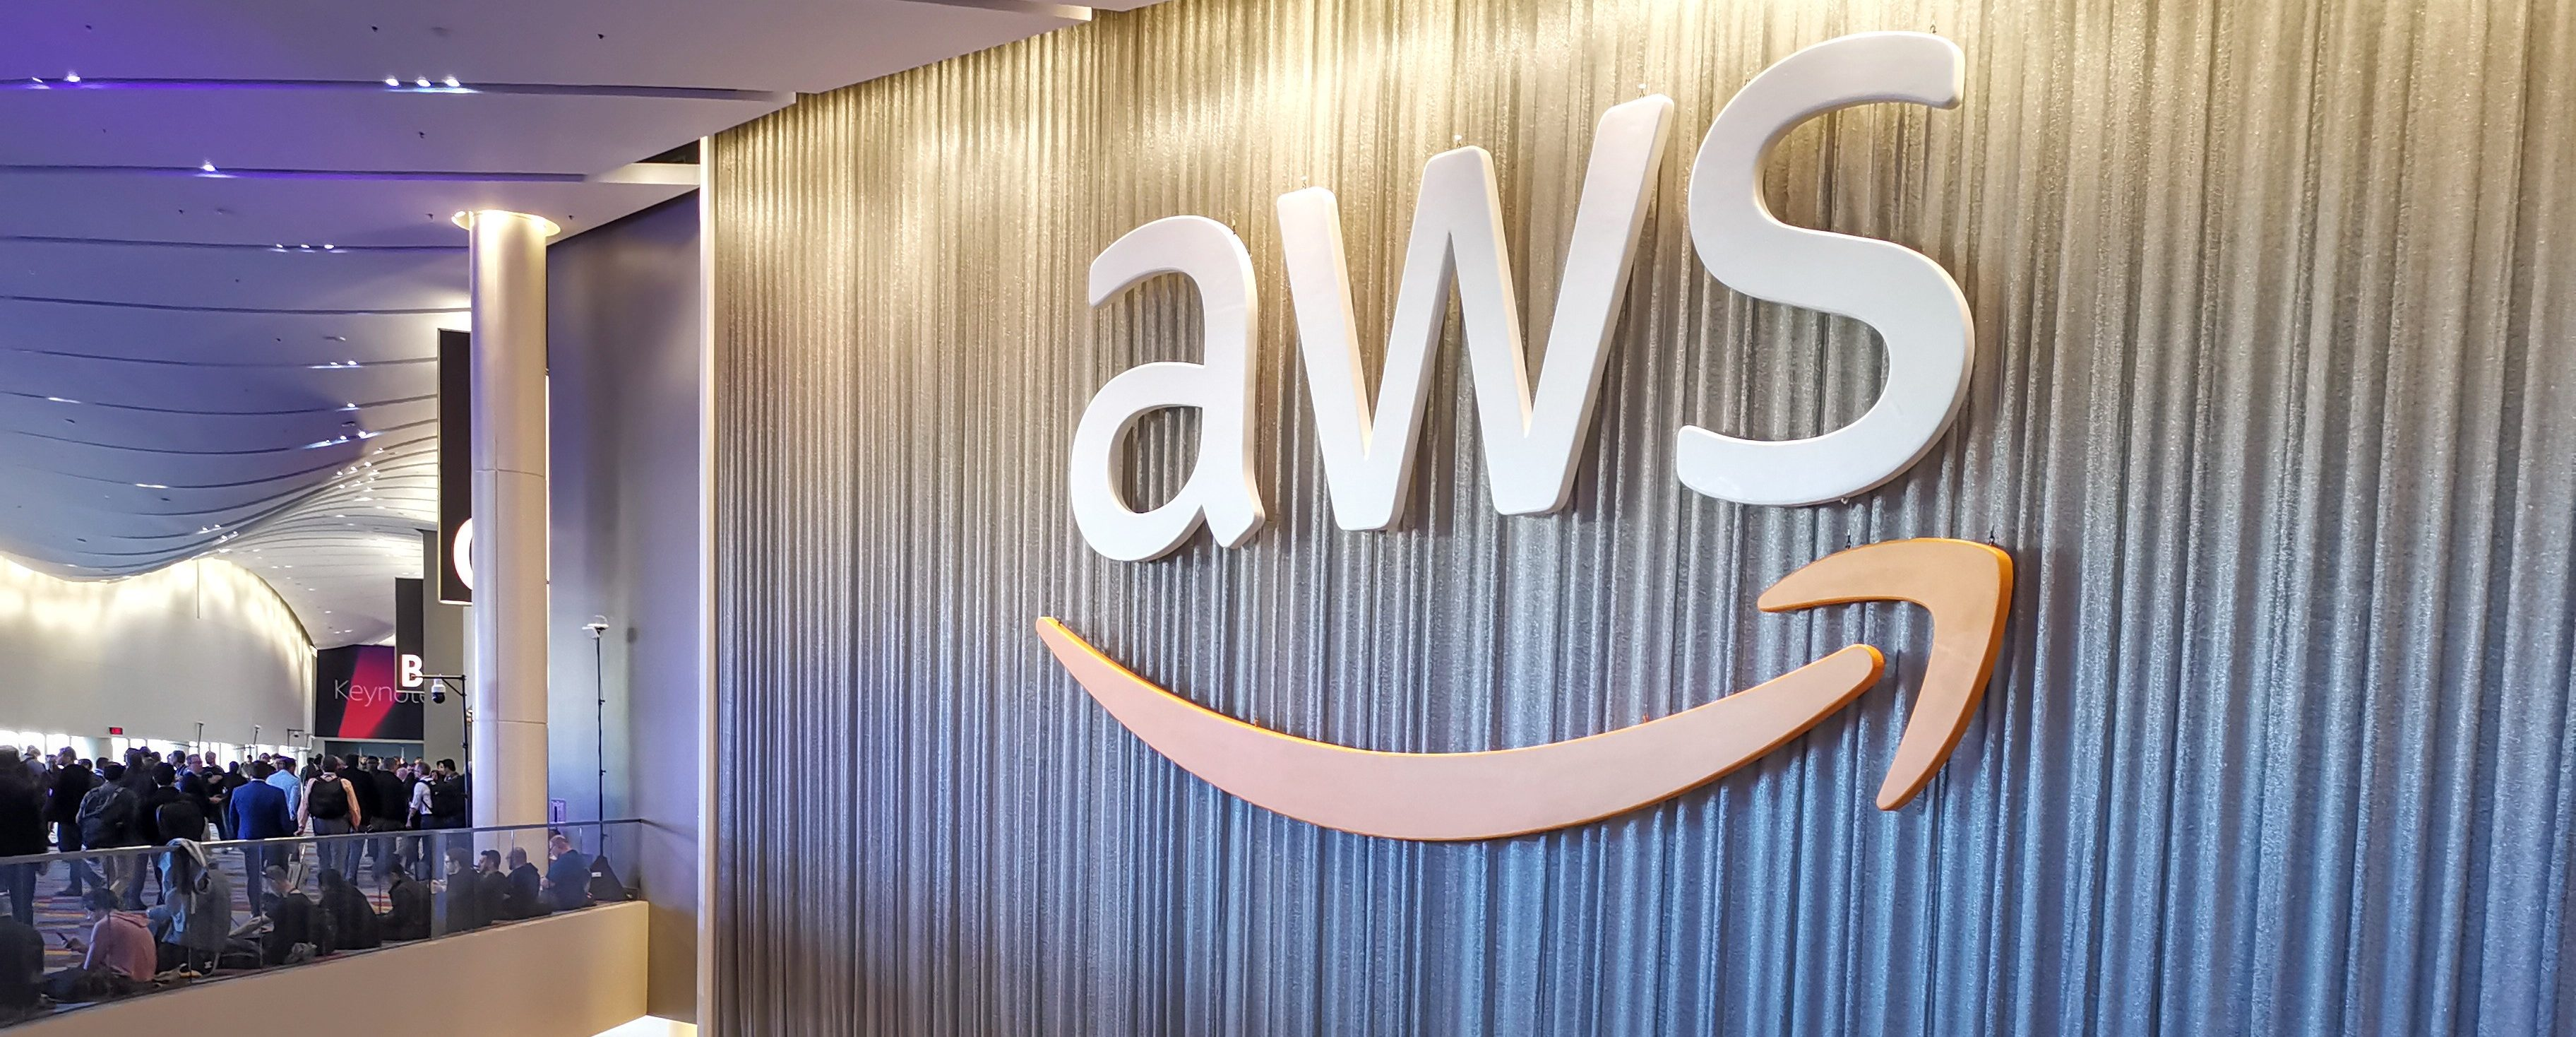 Hybrid AWS Outposts 'a great option' for manufacturing, healthcare, says AWS director